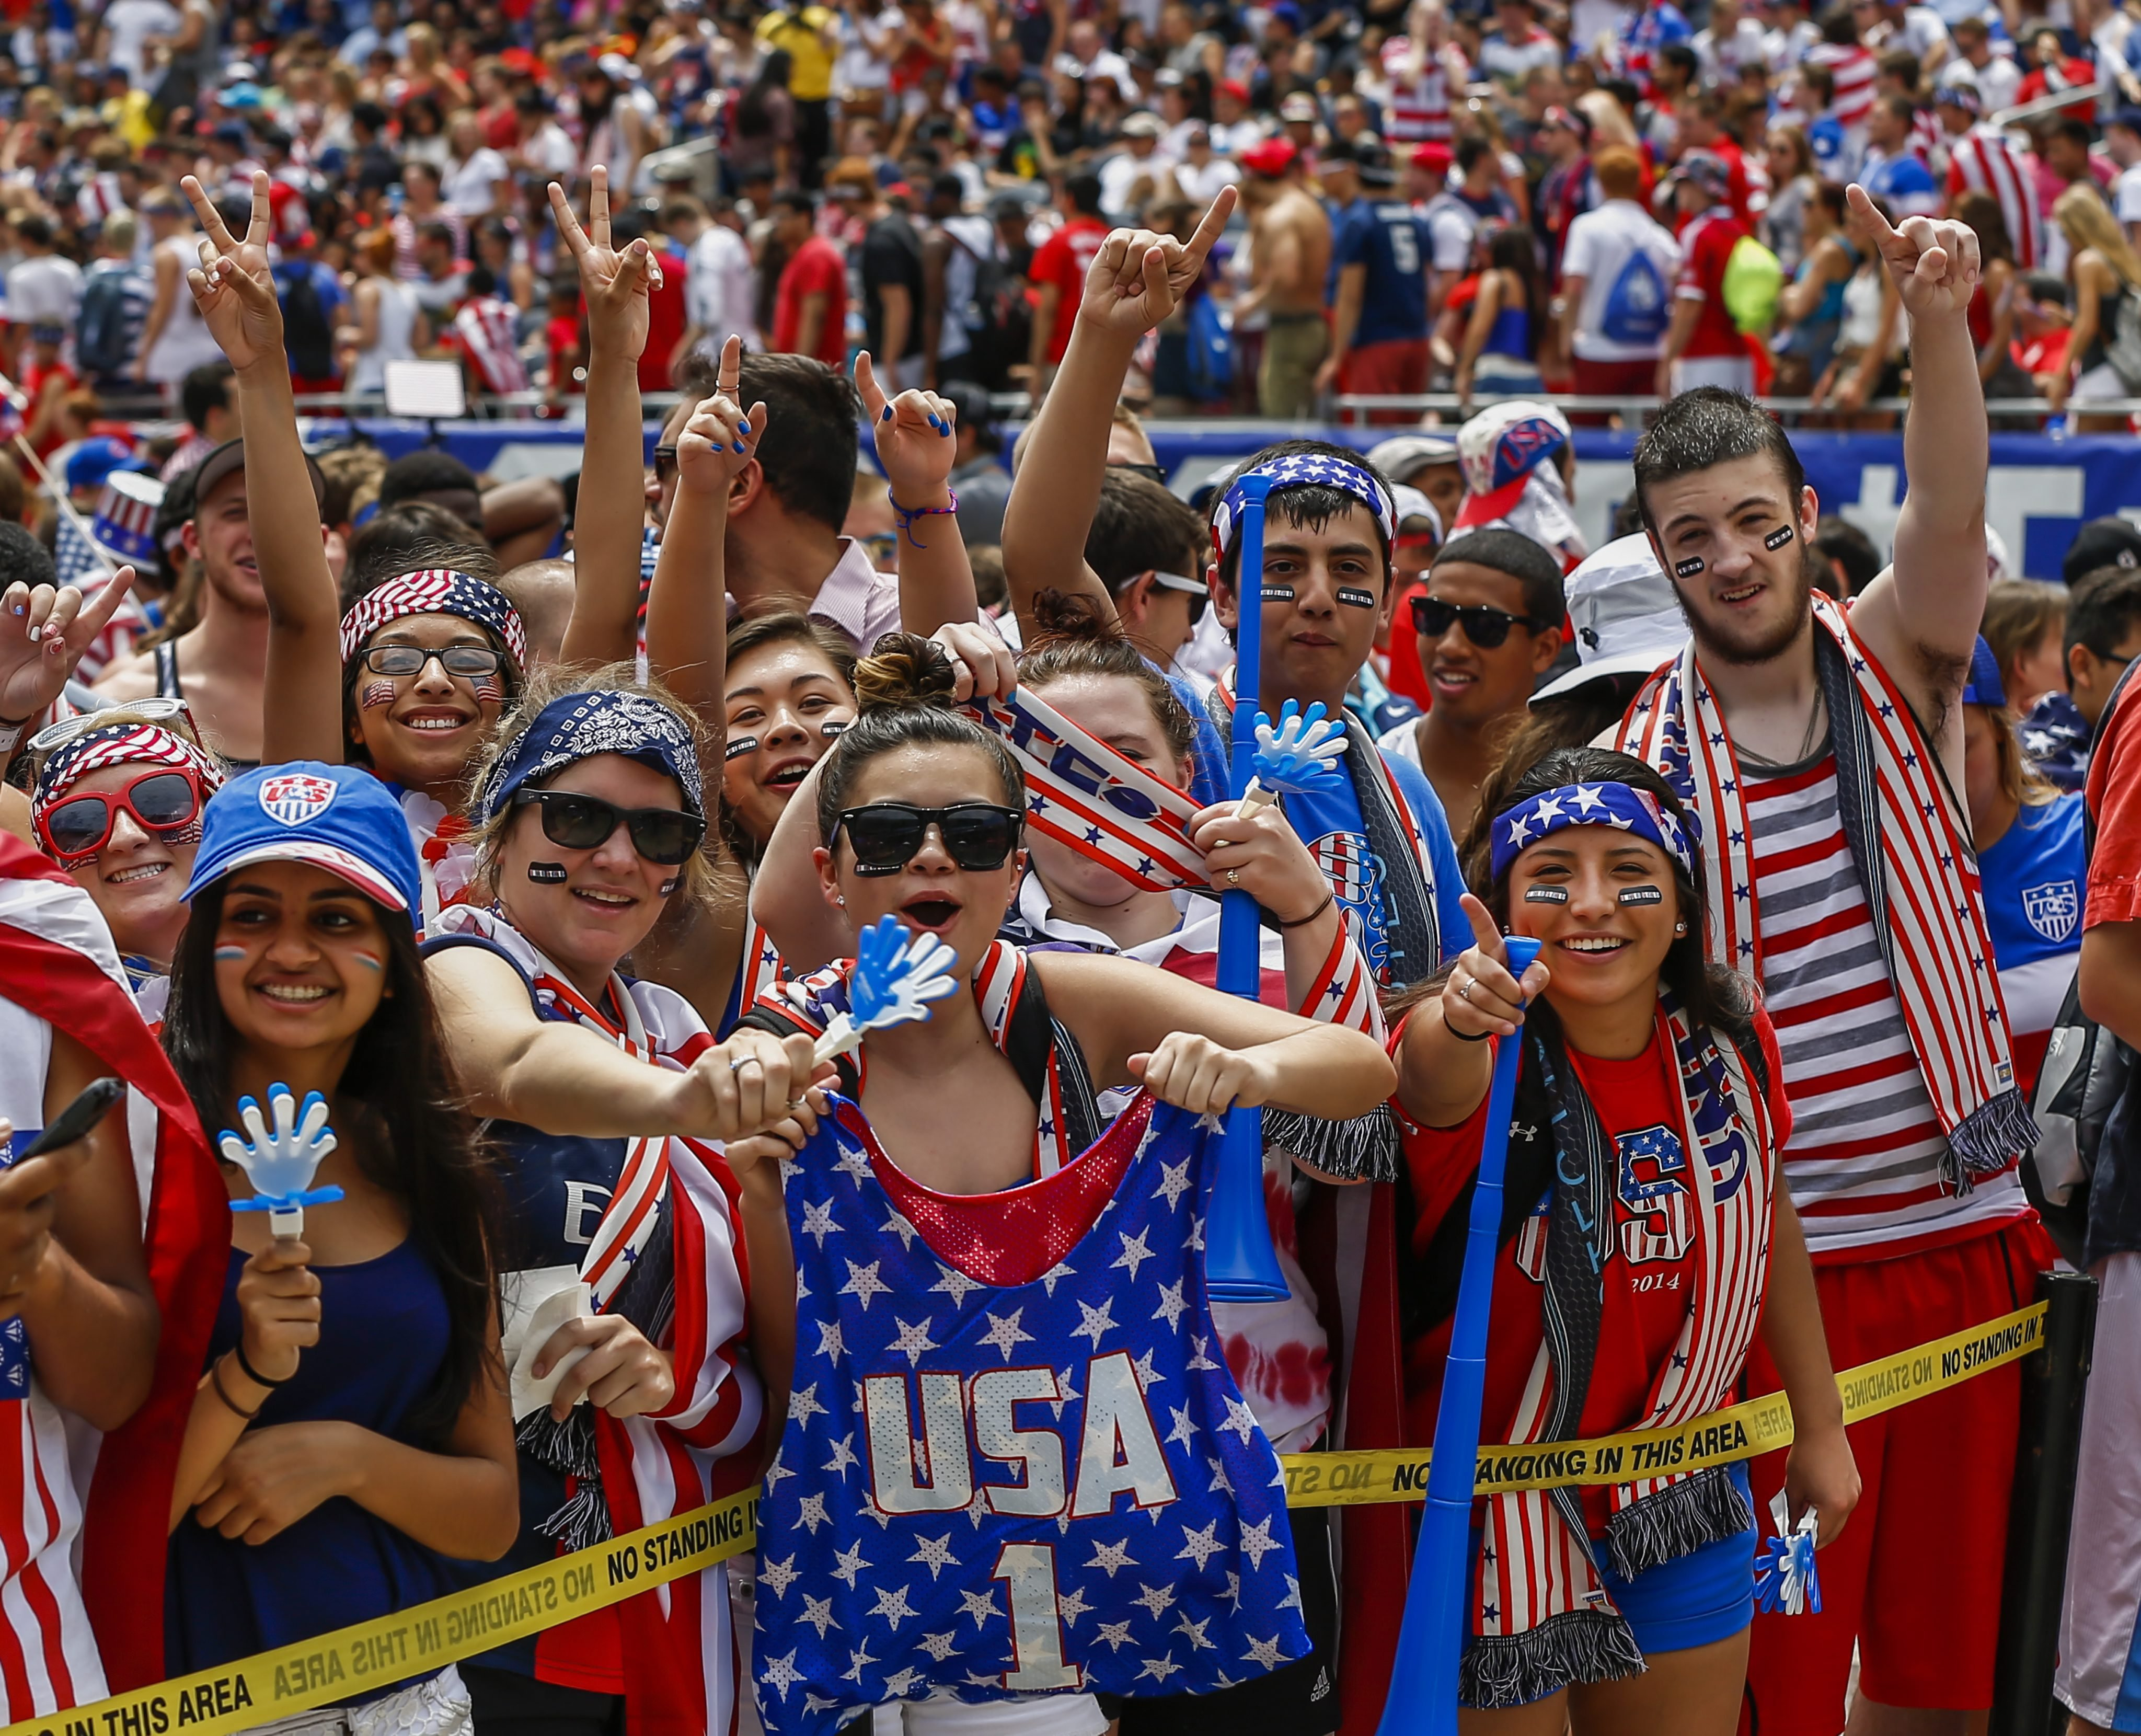 US fans cheer before the start of the FIFA World Cup Round of 16 match between the USA and Belgium played at the Arena Fonte Nova in Salvador, Brazil, at Soldier Field in Chicago, on July 1, 2014.